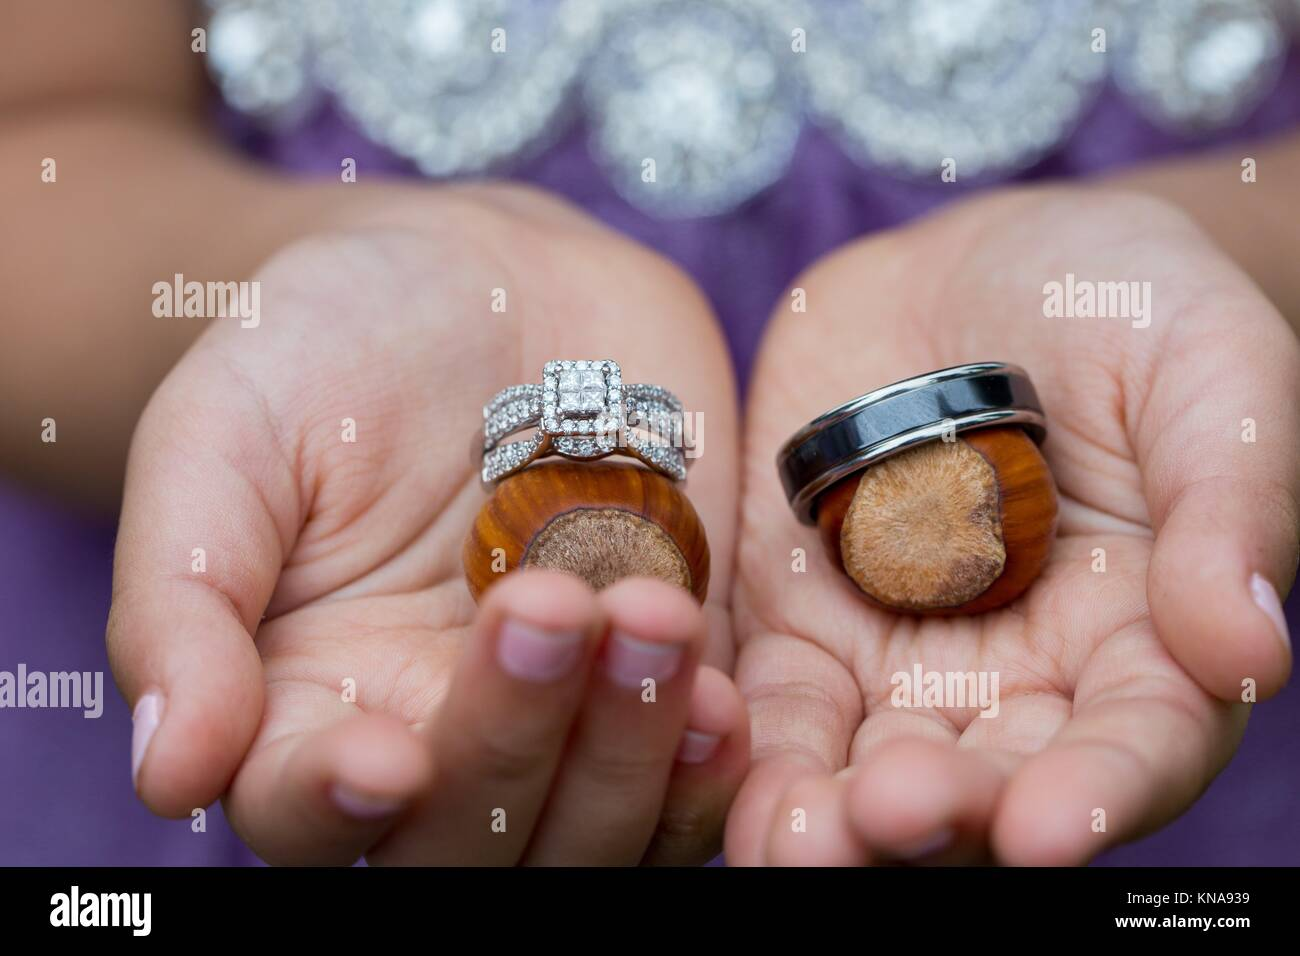 Ring Bearer Stock Photos & Ring Bearer Stock Images - Alamy